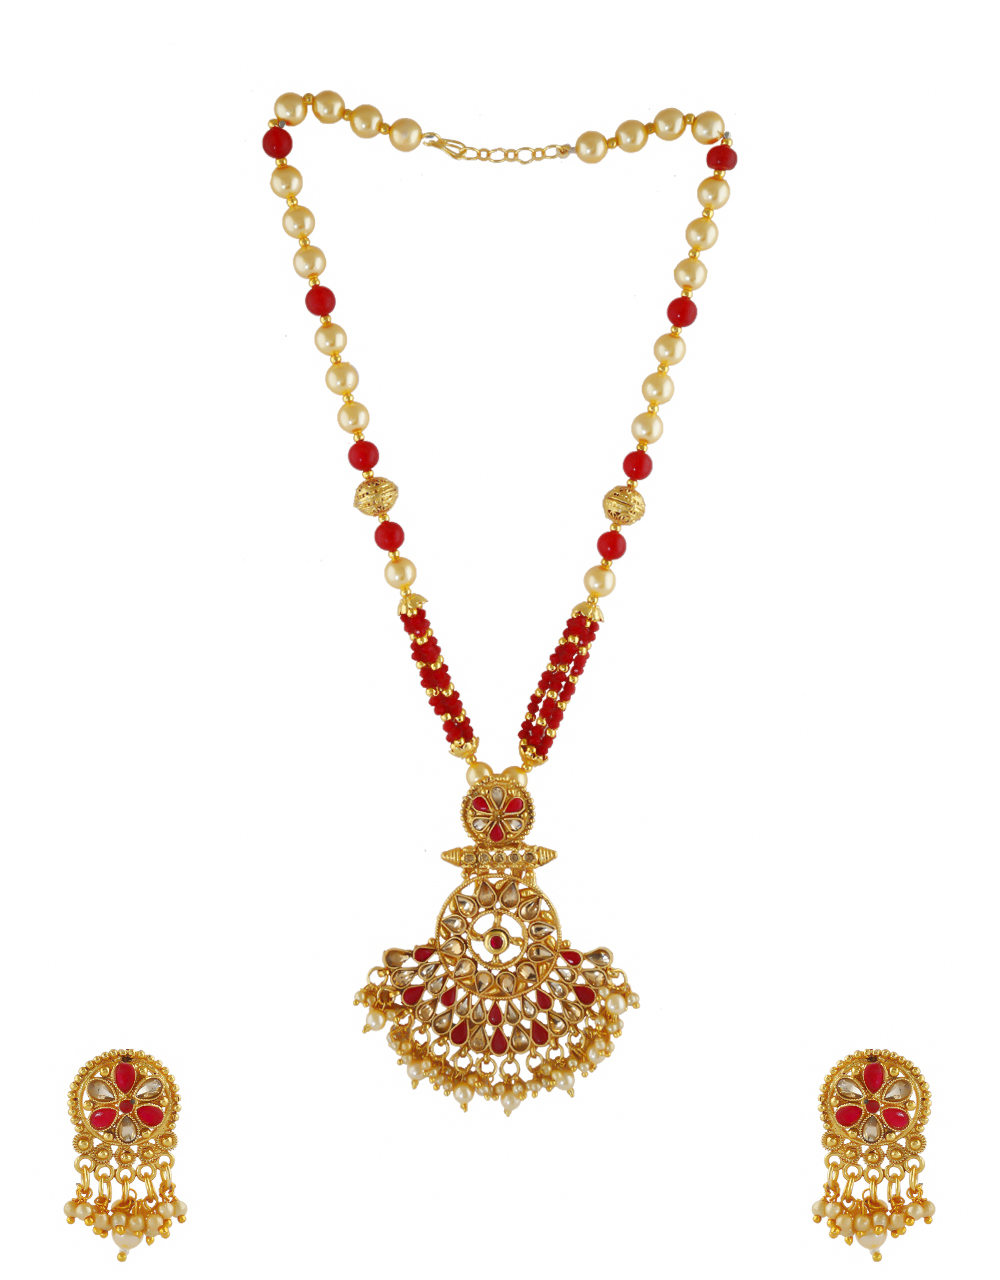 Red Colour Gold Finish Pearls Styled Fancy Necklace Jewellery